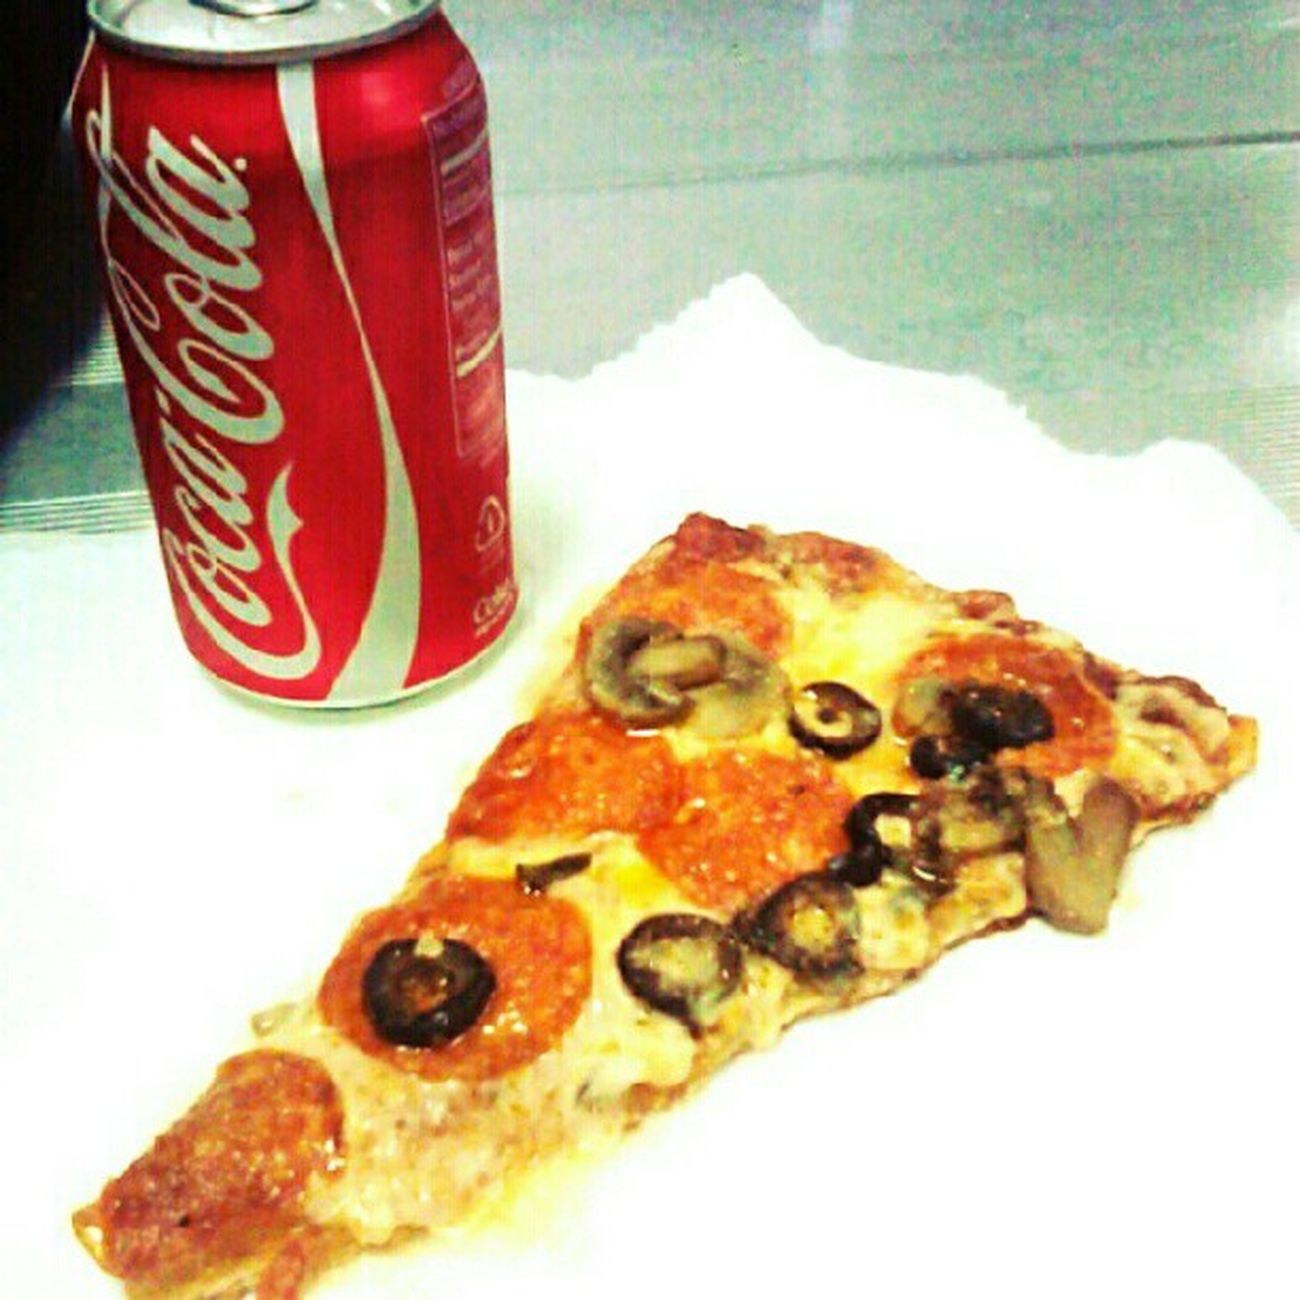 #lunch #pizza #me&eds #dietfail #foodie #foodporn #food #soda #cocacola #yum #yummy Yummy Lunch Me Food Pizza Yum Soda Cocacola Foodie Foodporn Dietfail Nylonsnack